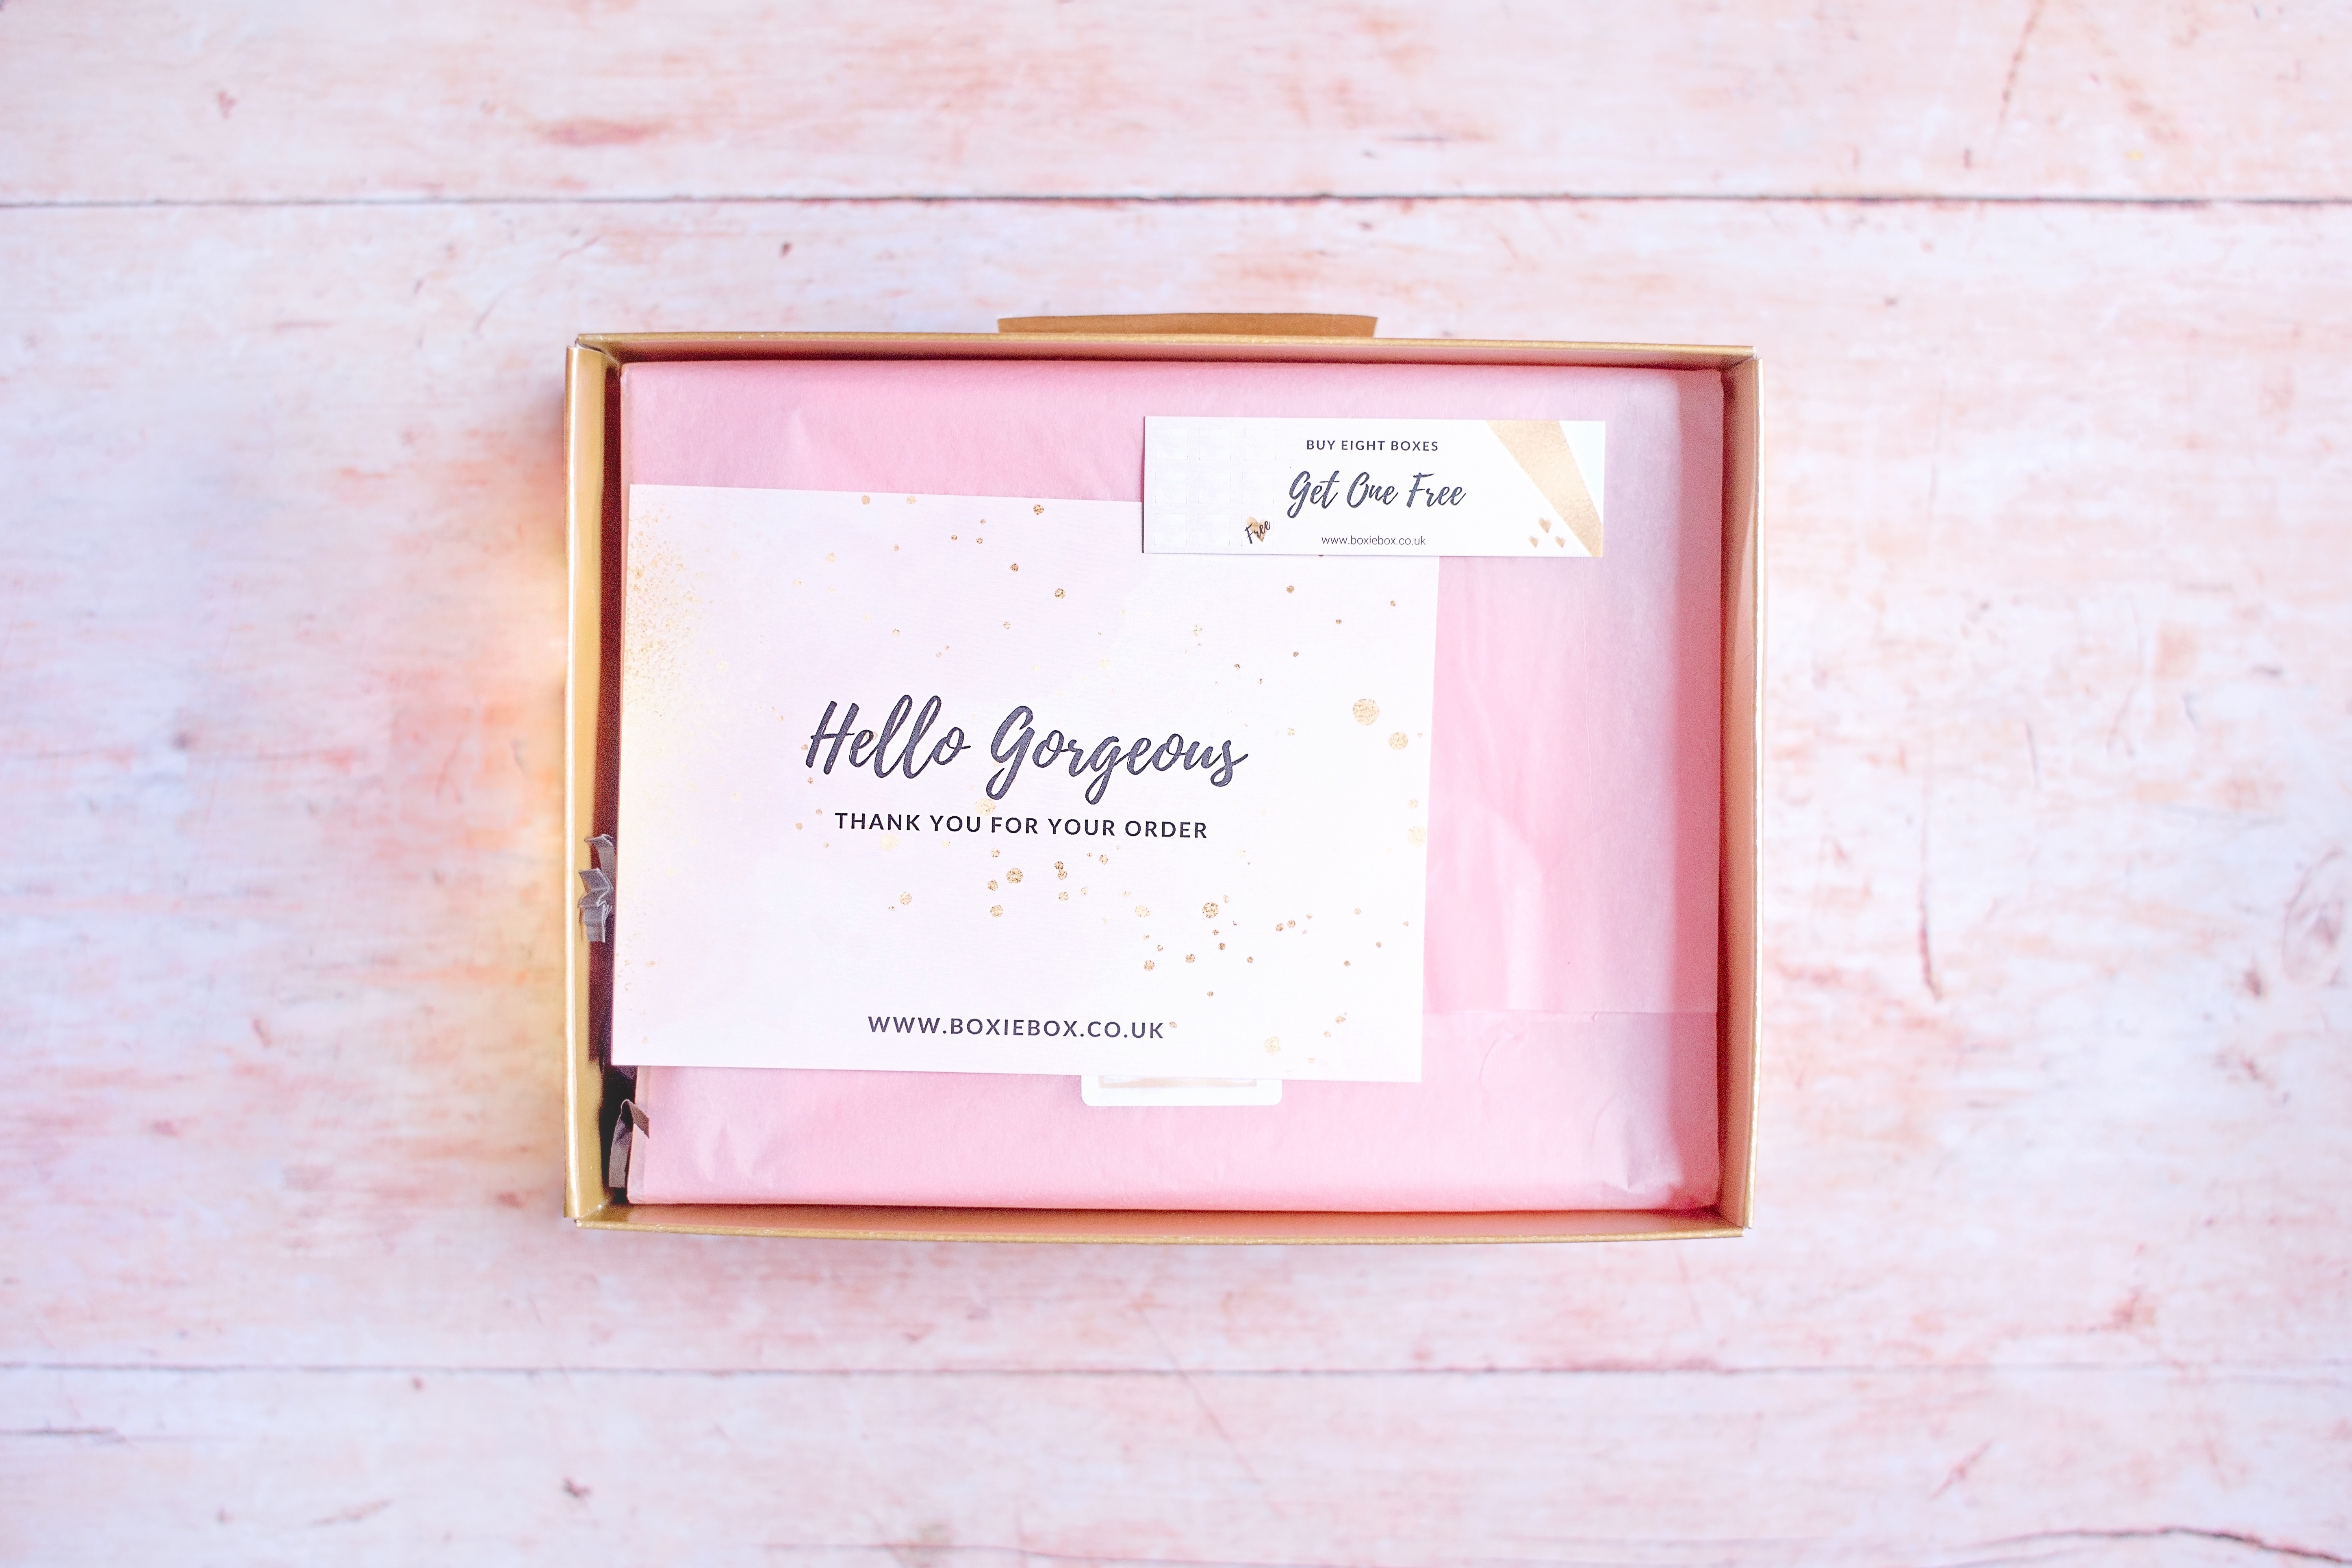 BOXIE BOX UNBOXING